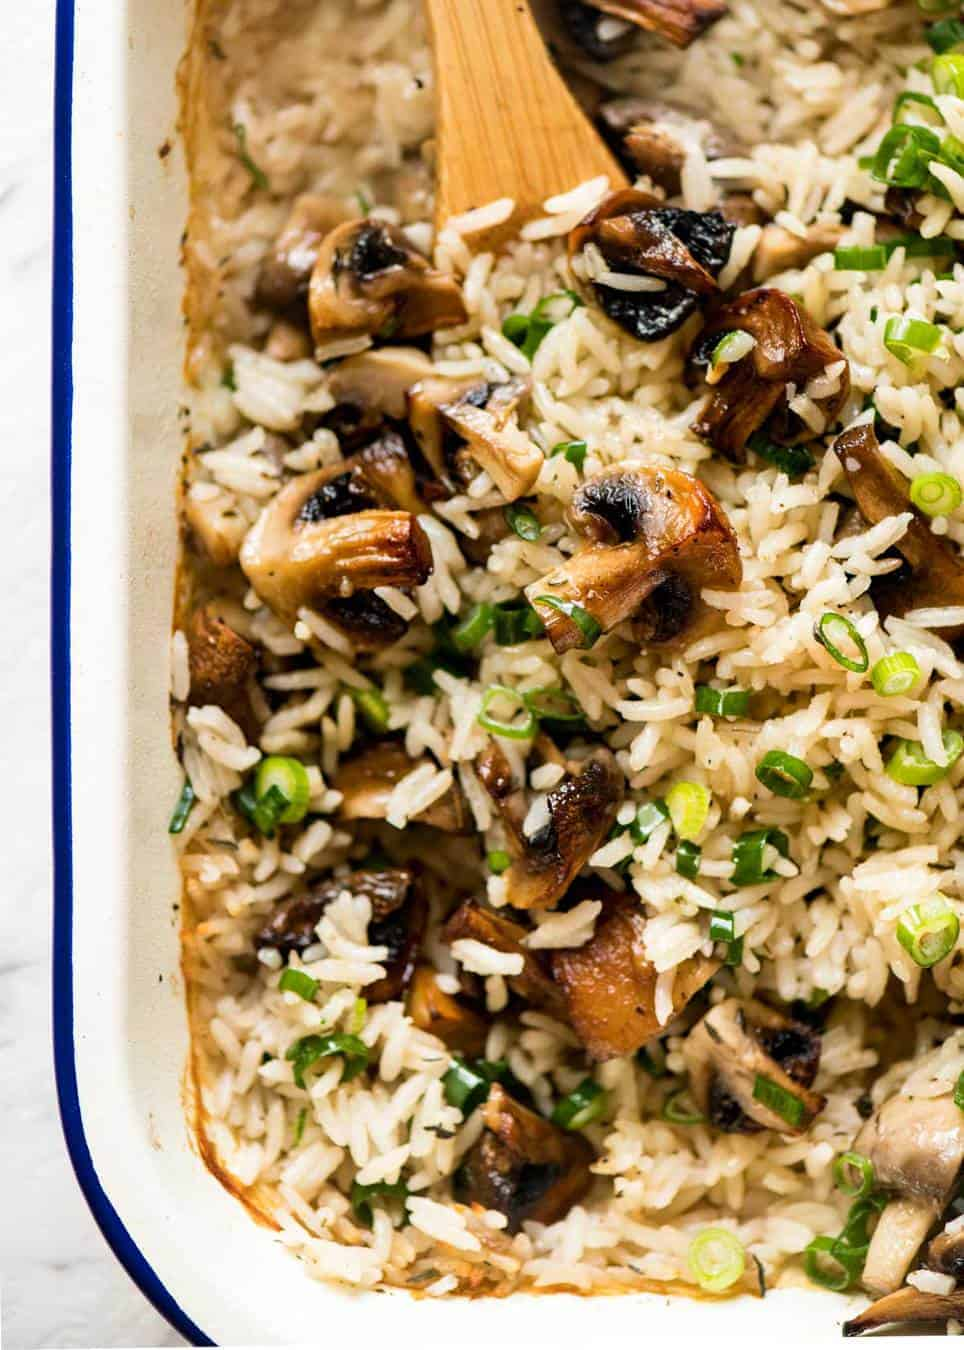 Baked Mushroom Rice - buttery, garlicky, golden brown juicy mushrooms and fluffy rice, all baked in one pan! recipetineats.com